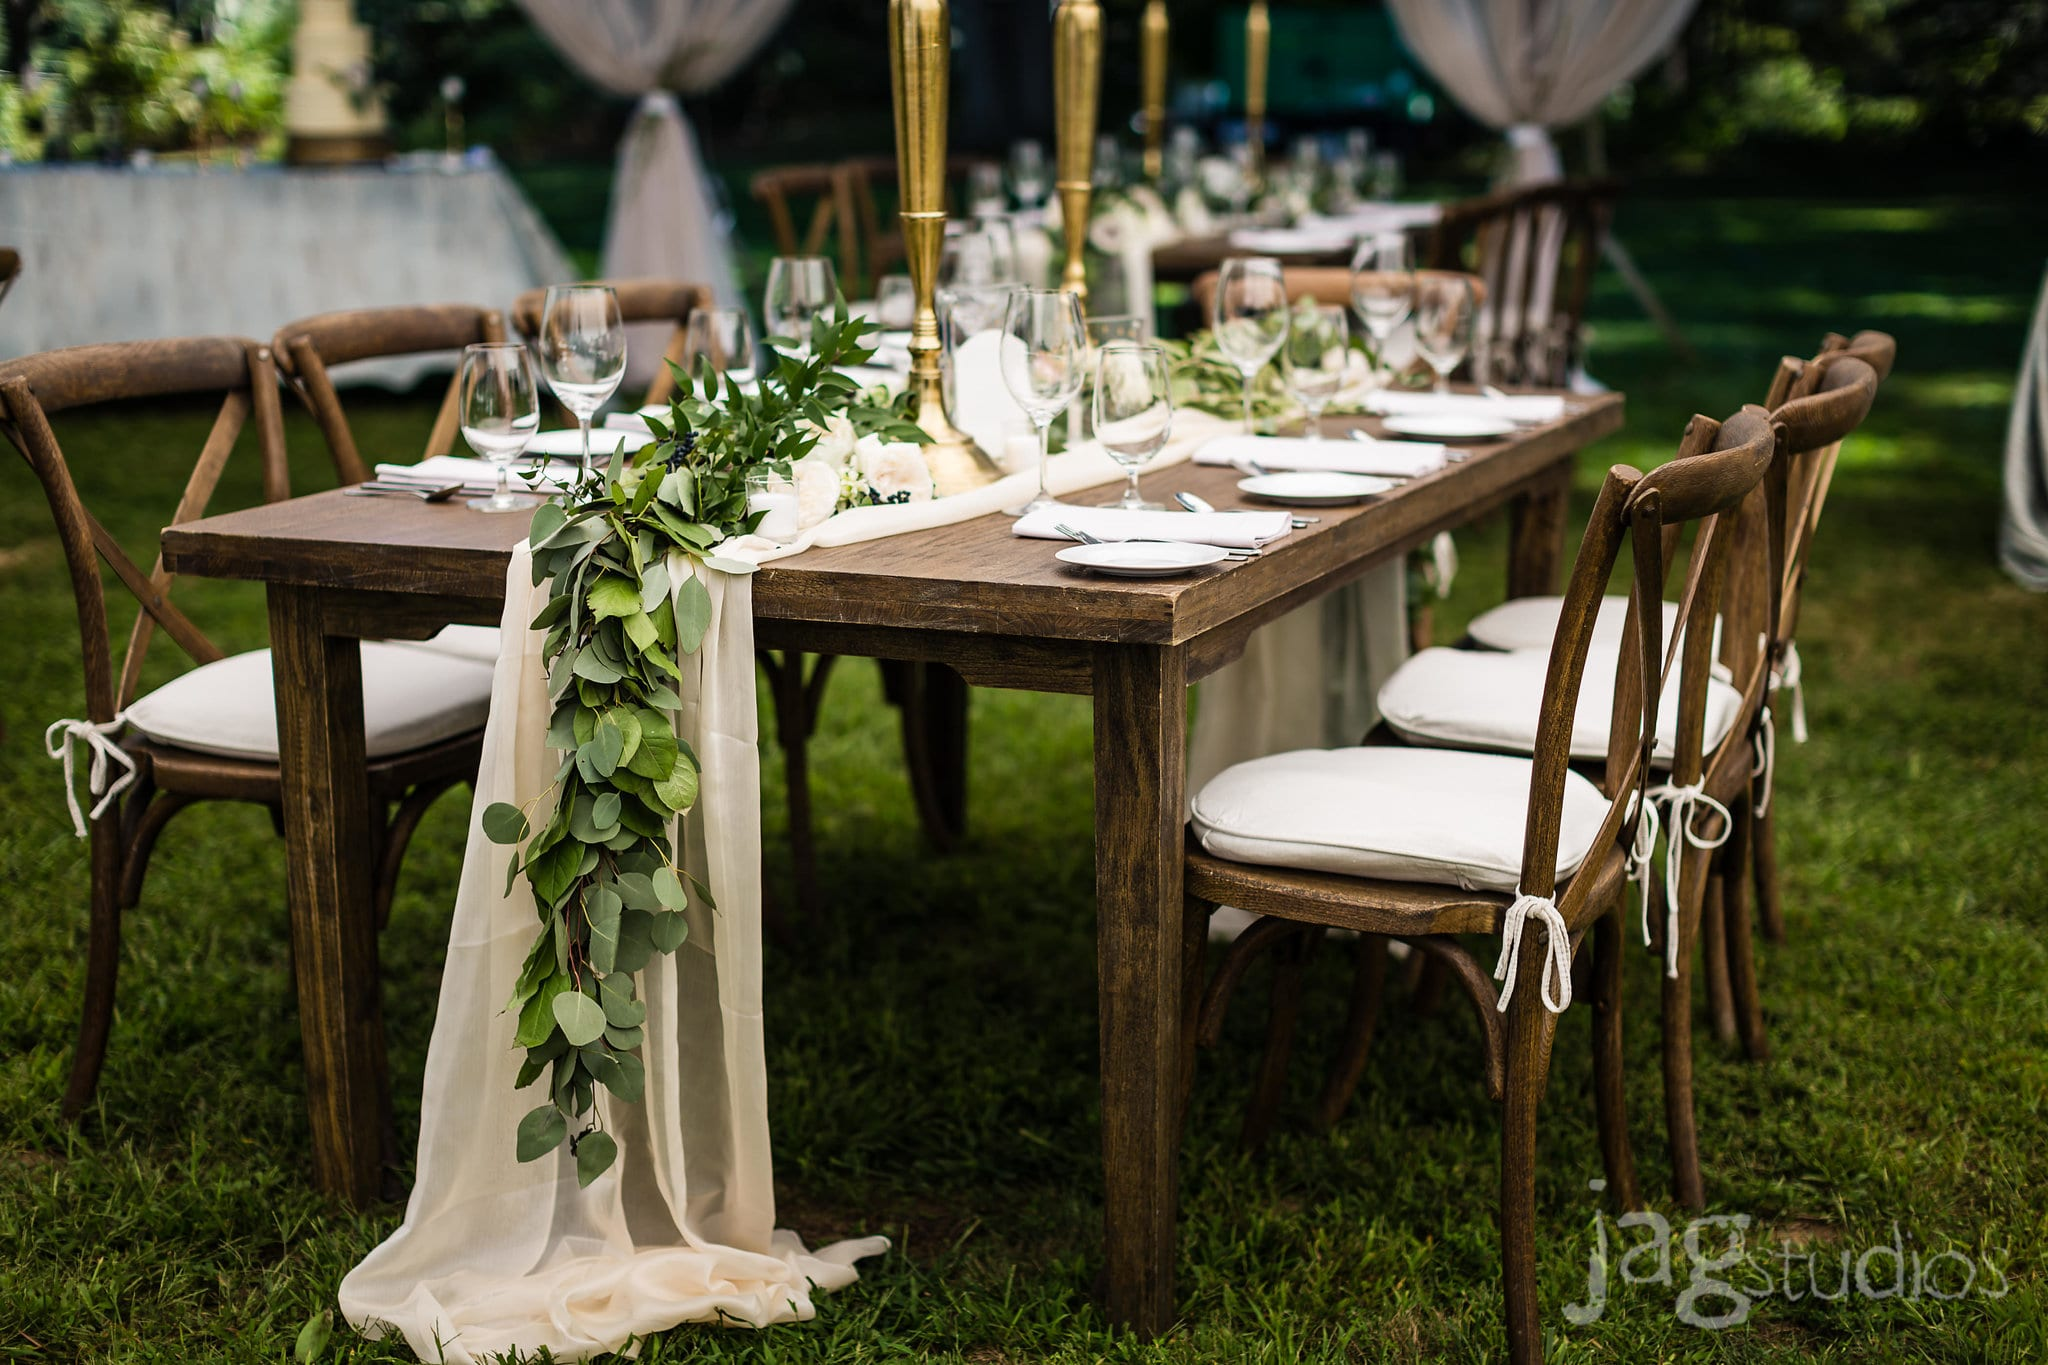 A Midnight Summer Dream chiffon runner luxury New England Wedding Jaclyn Watson Events